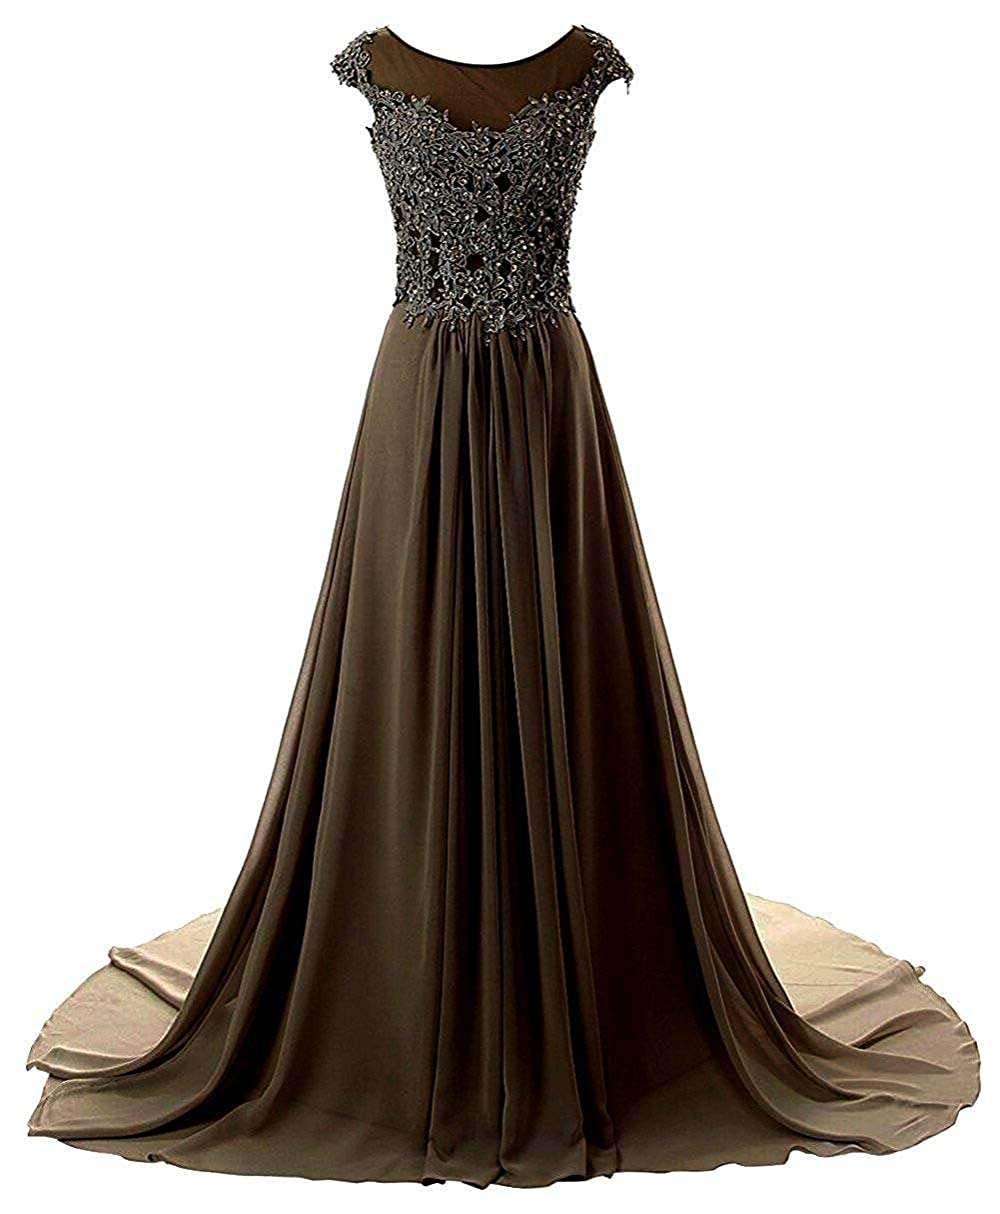 Chocolate Wanshaqin Women's Aline Lace Appliques Evening Party Cocktail Dresses Bridesmaid Gowns Prom Formal Dresses for Events Party